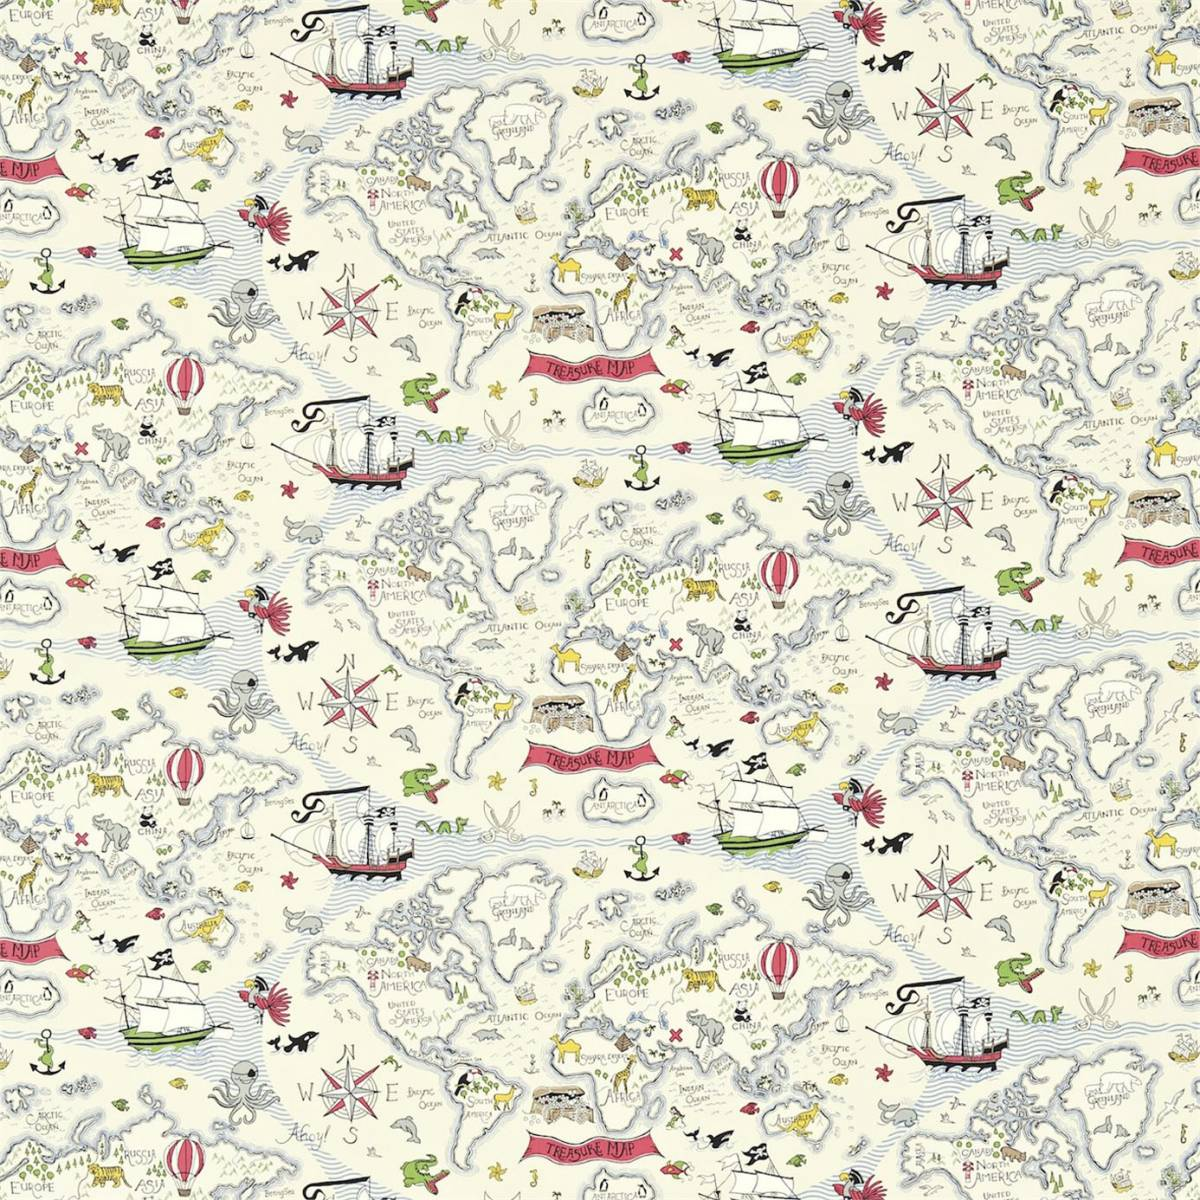 San Treasure Map Fabric Vanilla Sanderson Abracazoo Fabrics And Wallpapers Collection